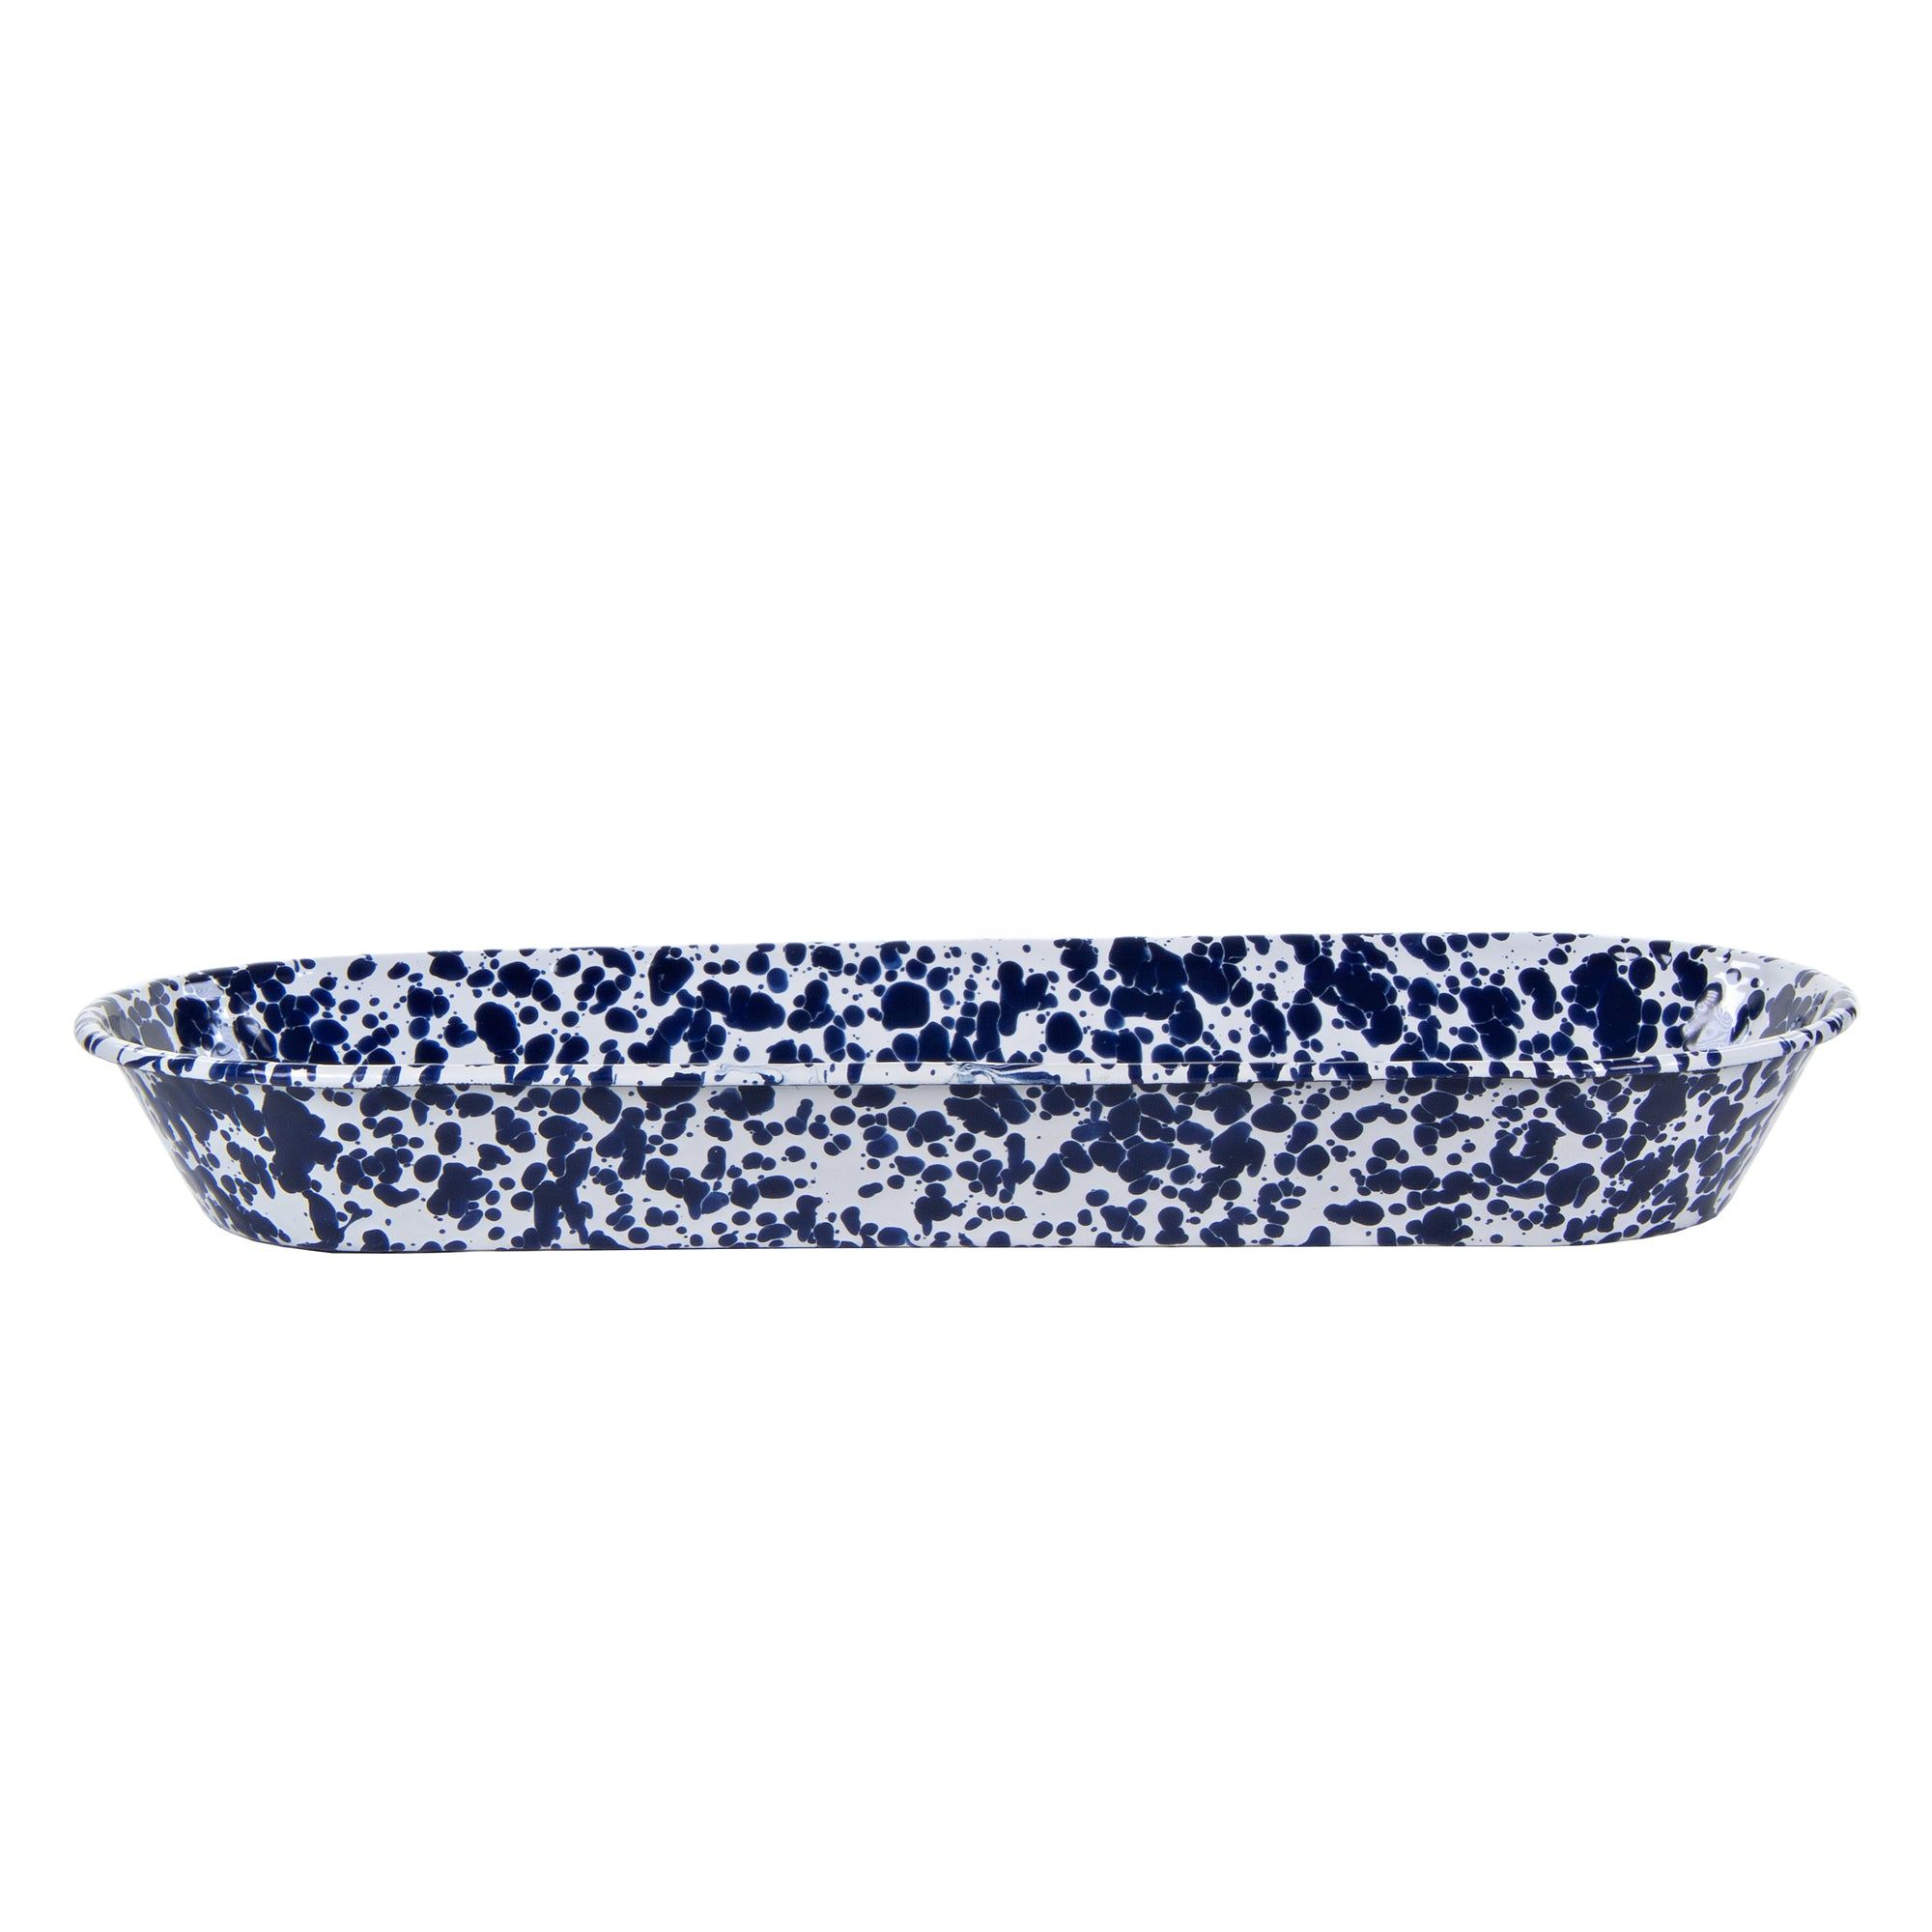 CB10 - Cobalt Swirl Oval Basket Product 2